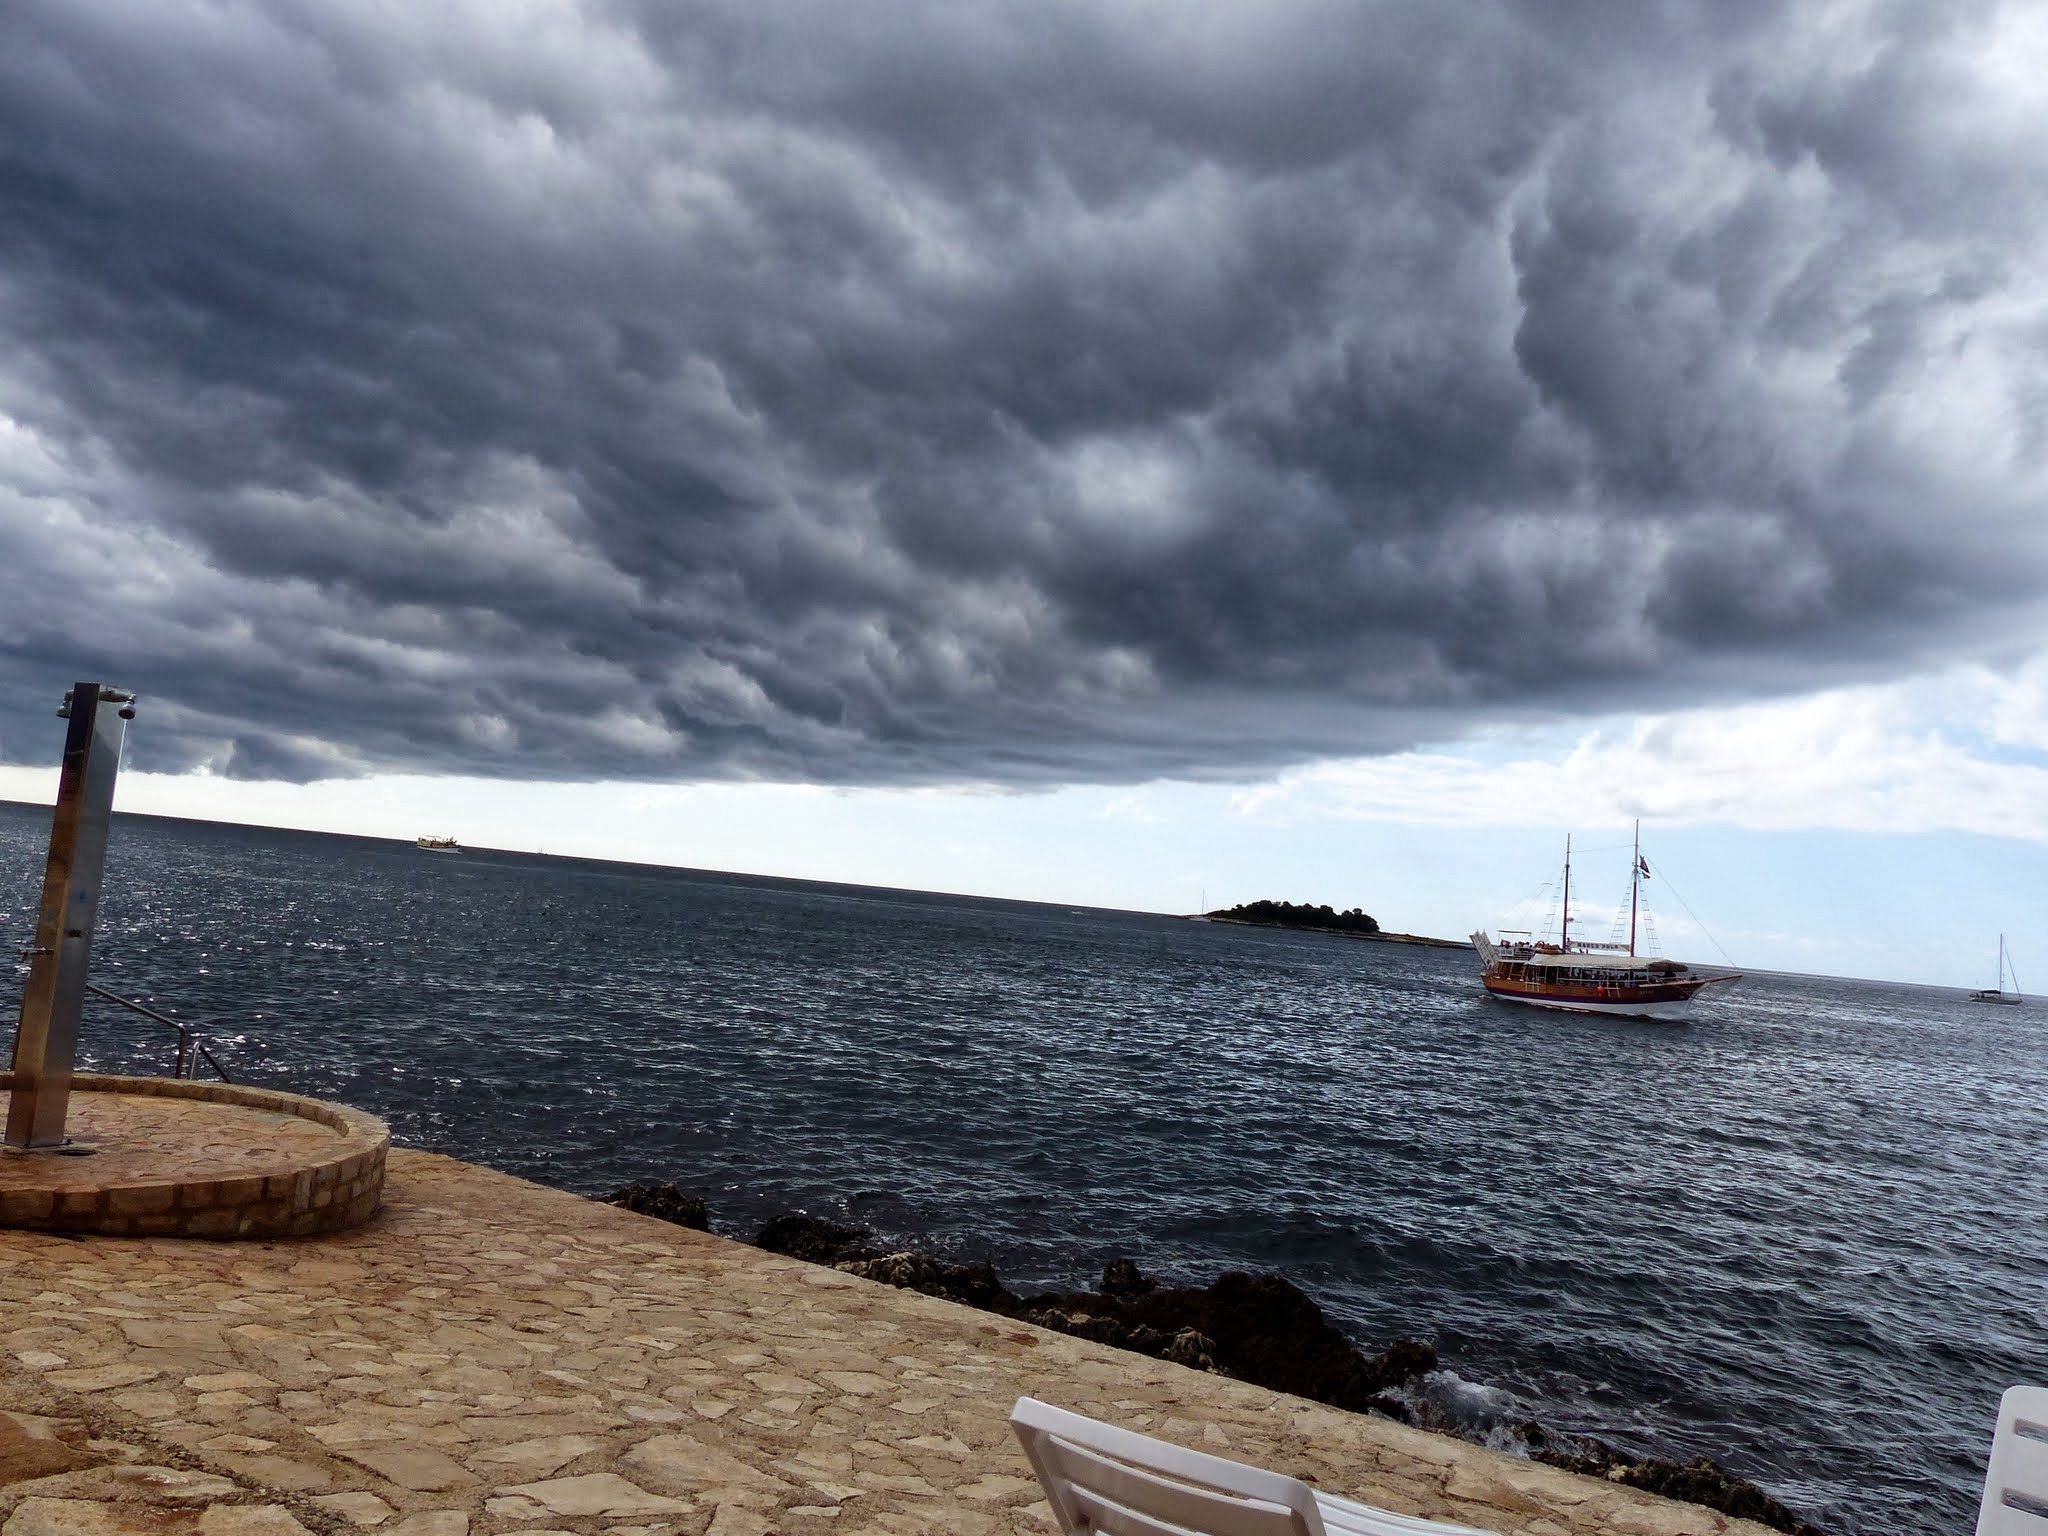 Before the storm by emalfni